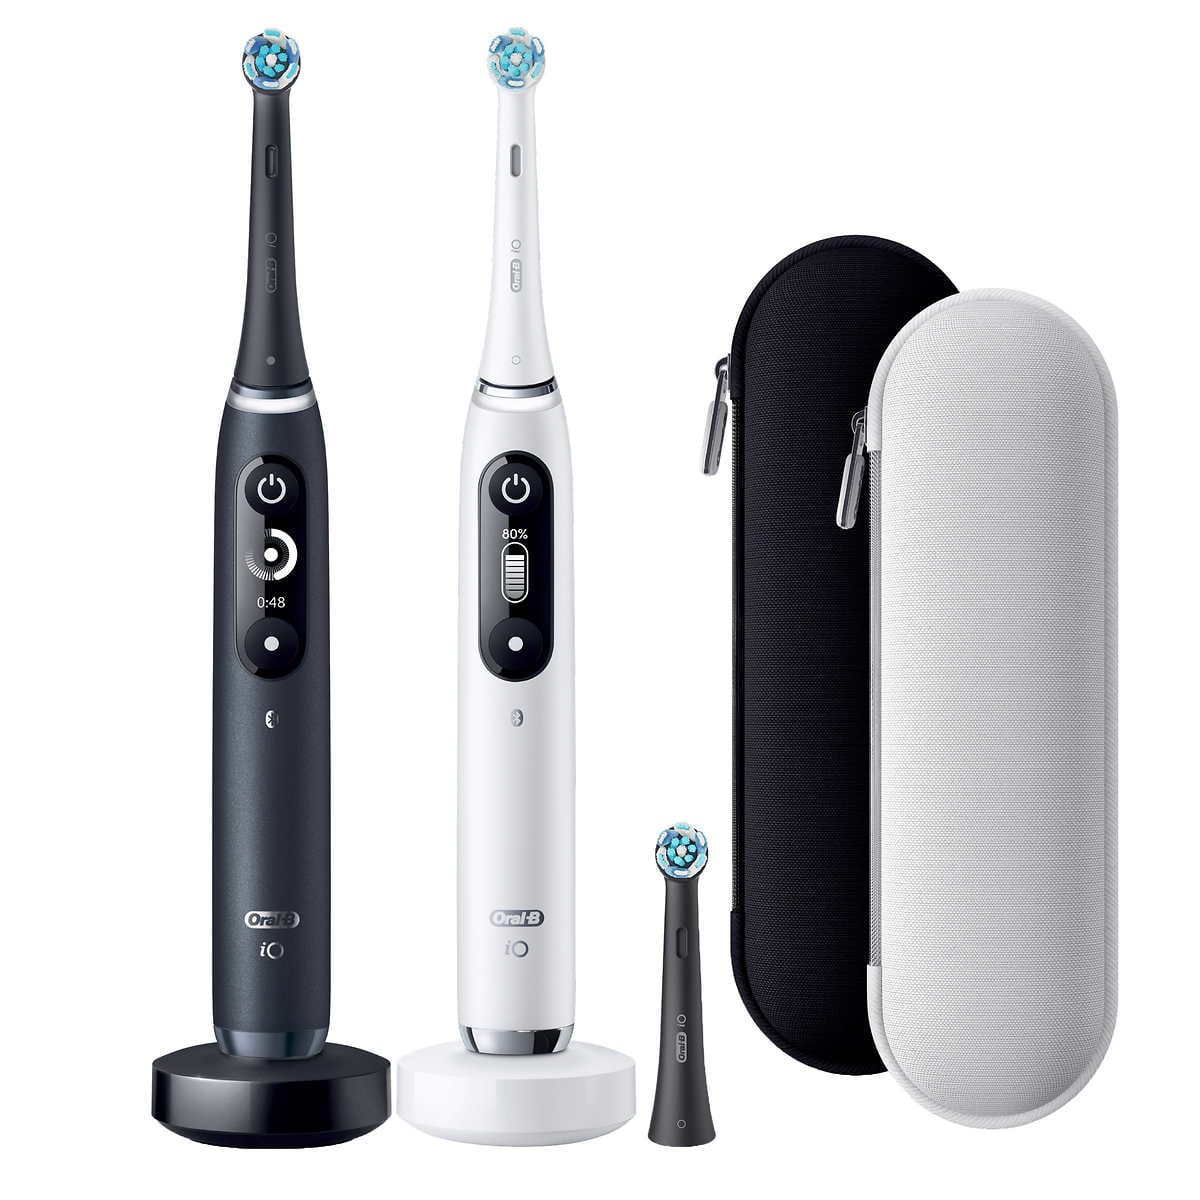 Oral-B iO Series 7c Rechargeable Toothbrush 2-pack $199.99